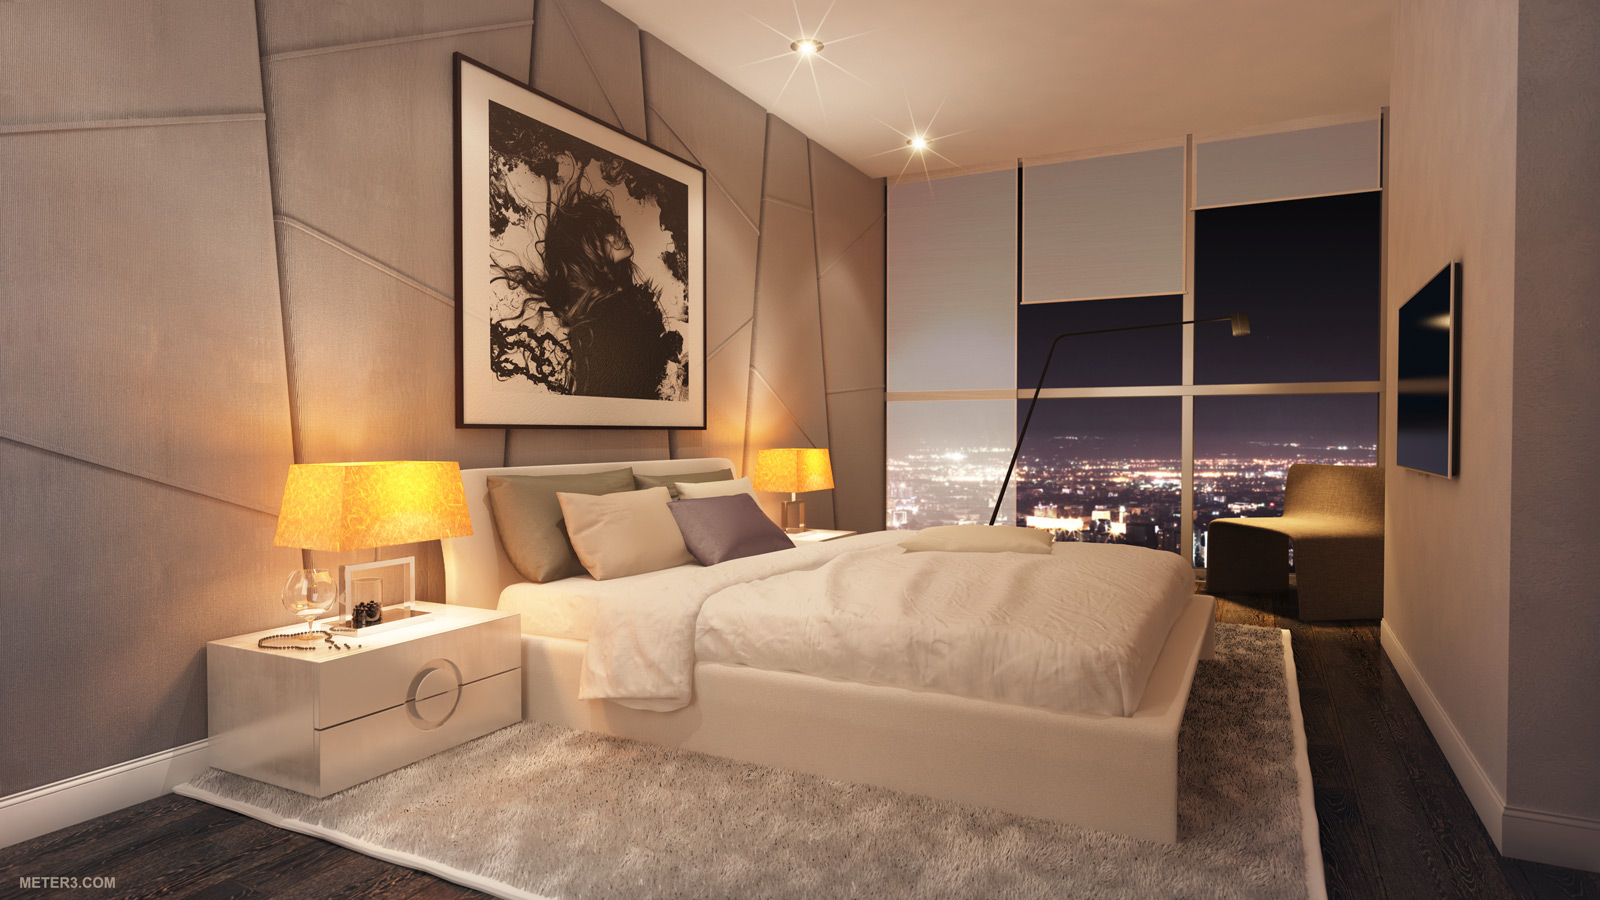 Smoking hot penthouse interior designs visualized for Bedroom decorative accessories